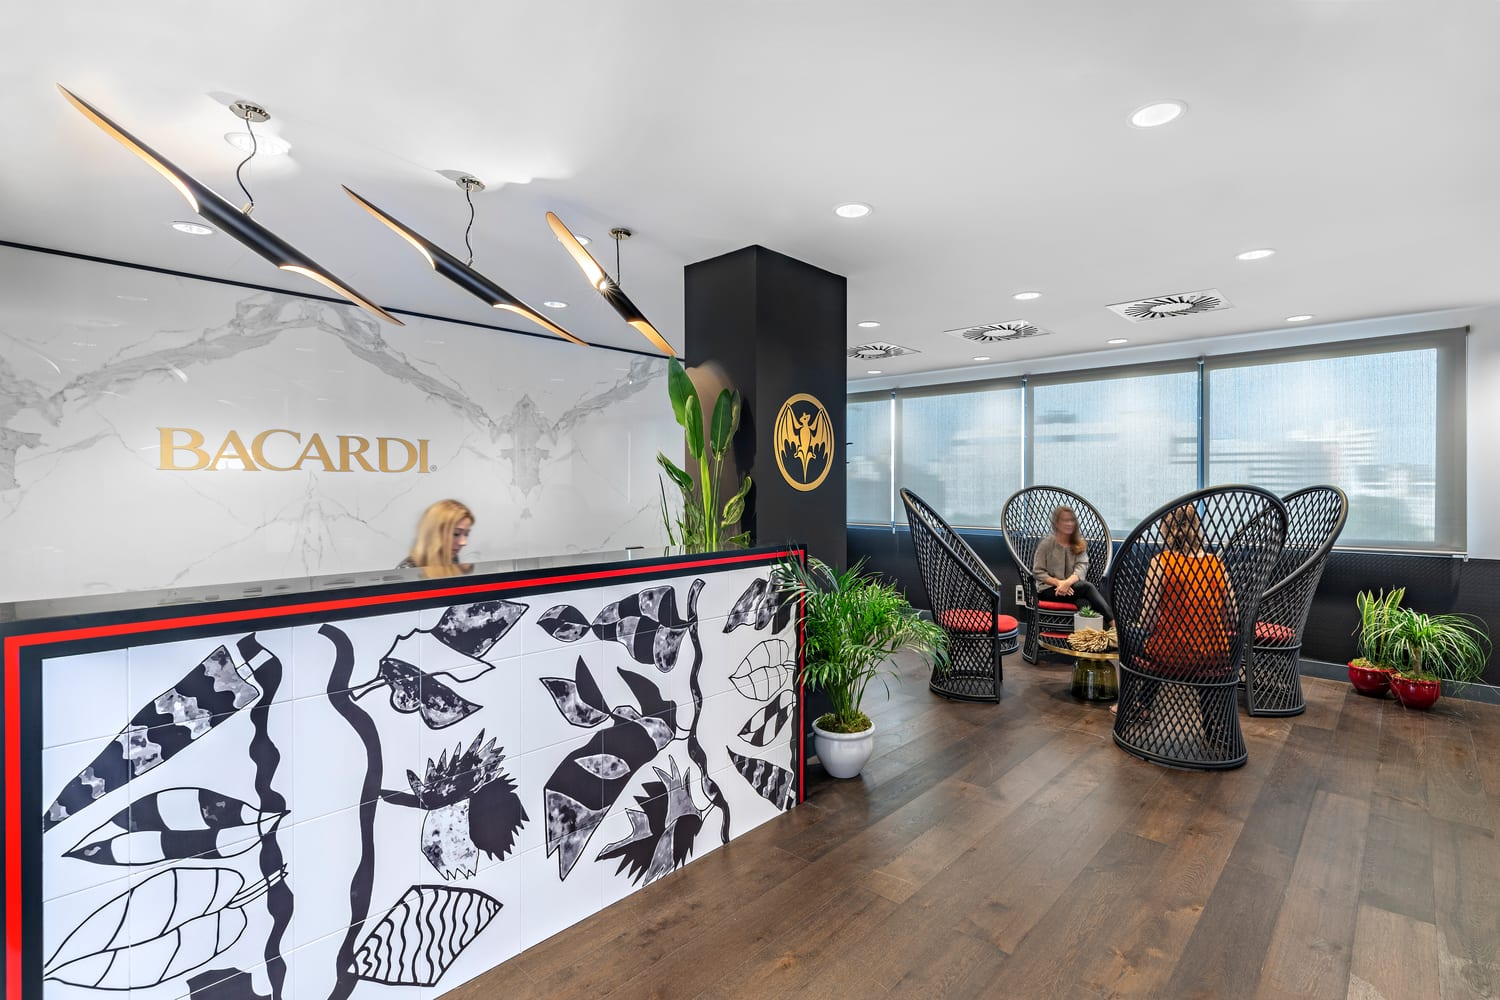 The Bacardi Front Desk and Reception Area